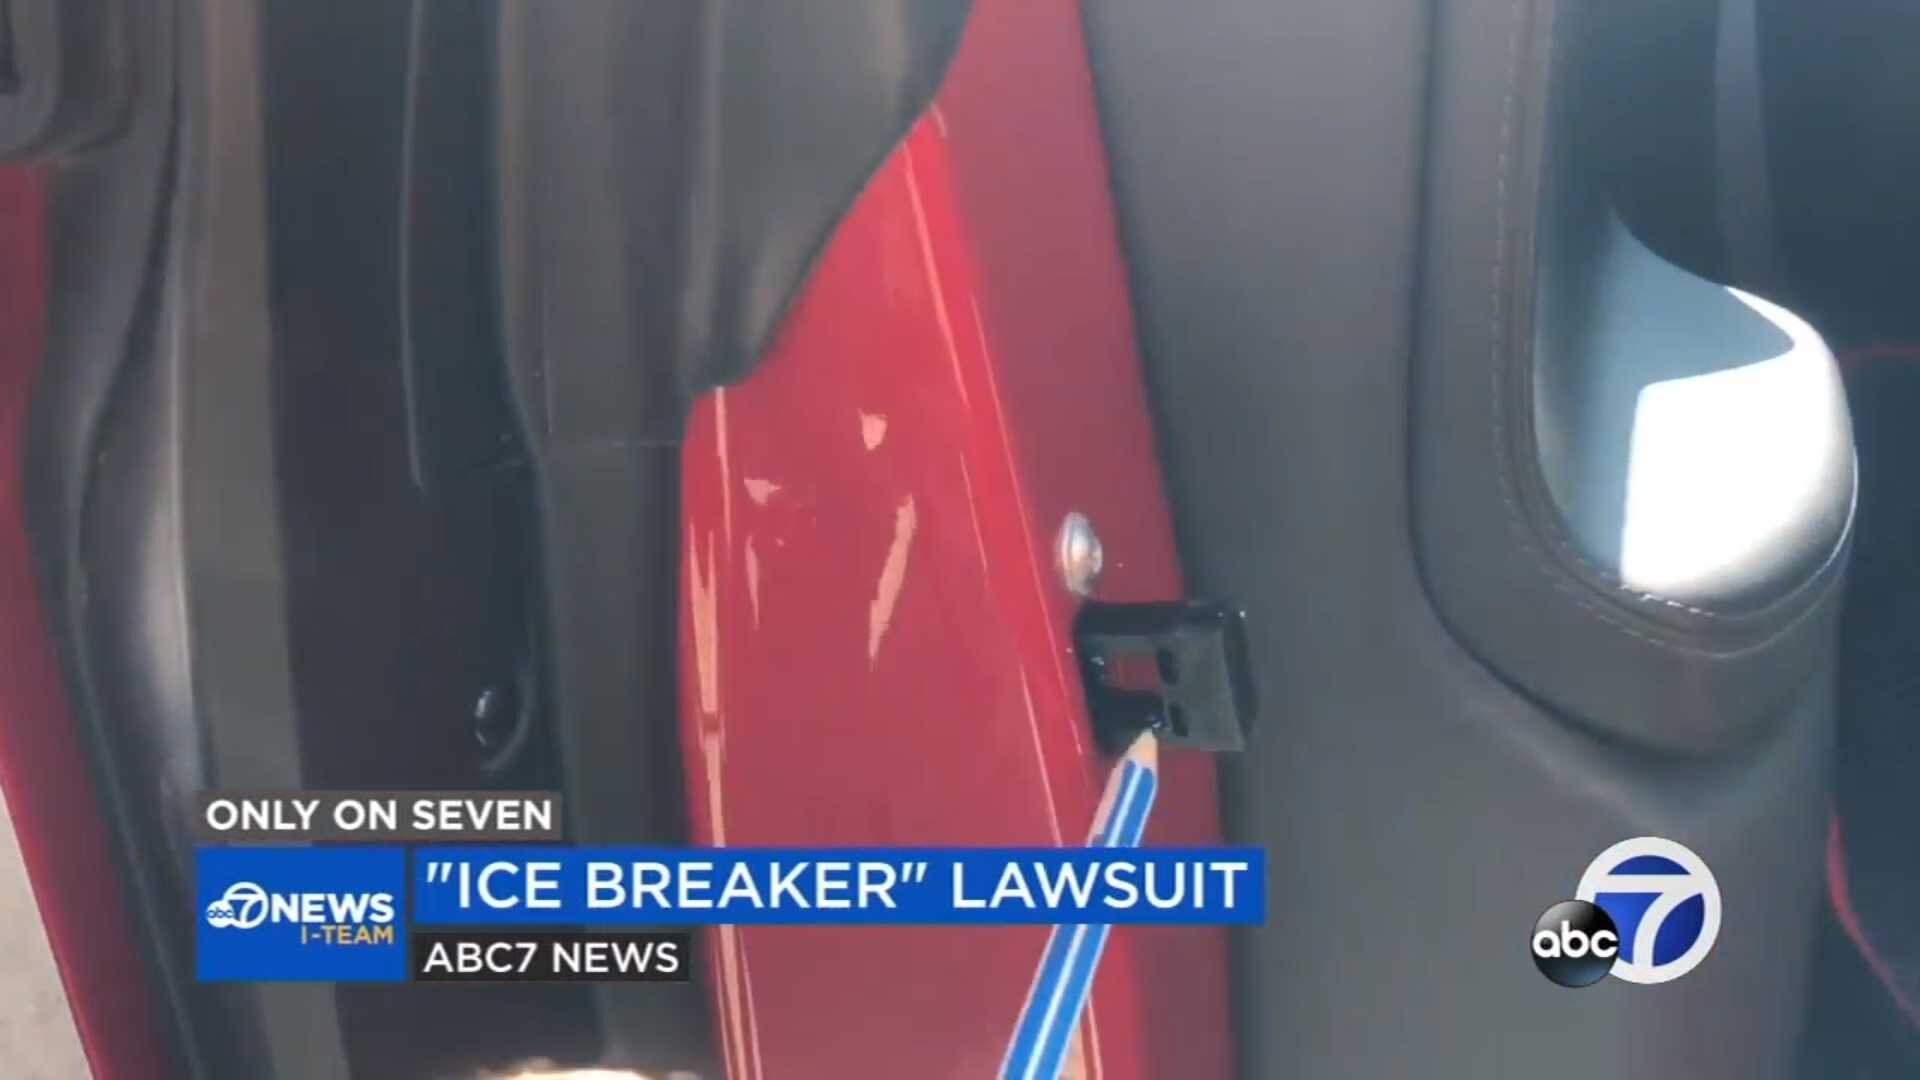 Tesla Model X 'Icebreaker' feature shown extended with entrapment hazard clearly visible